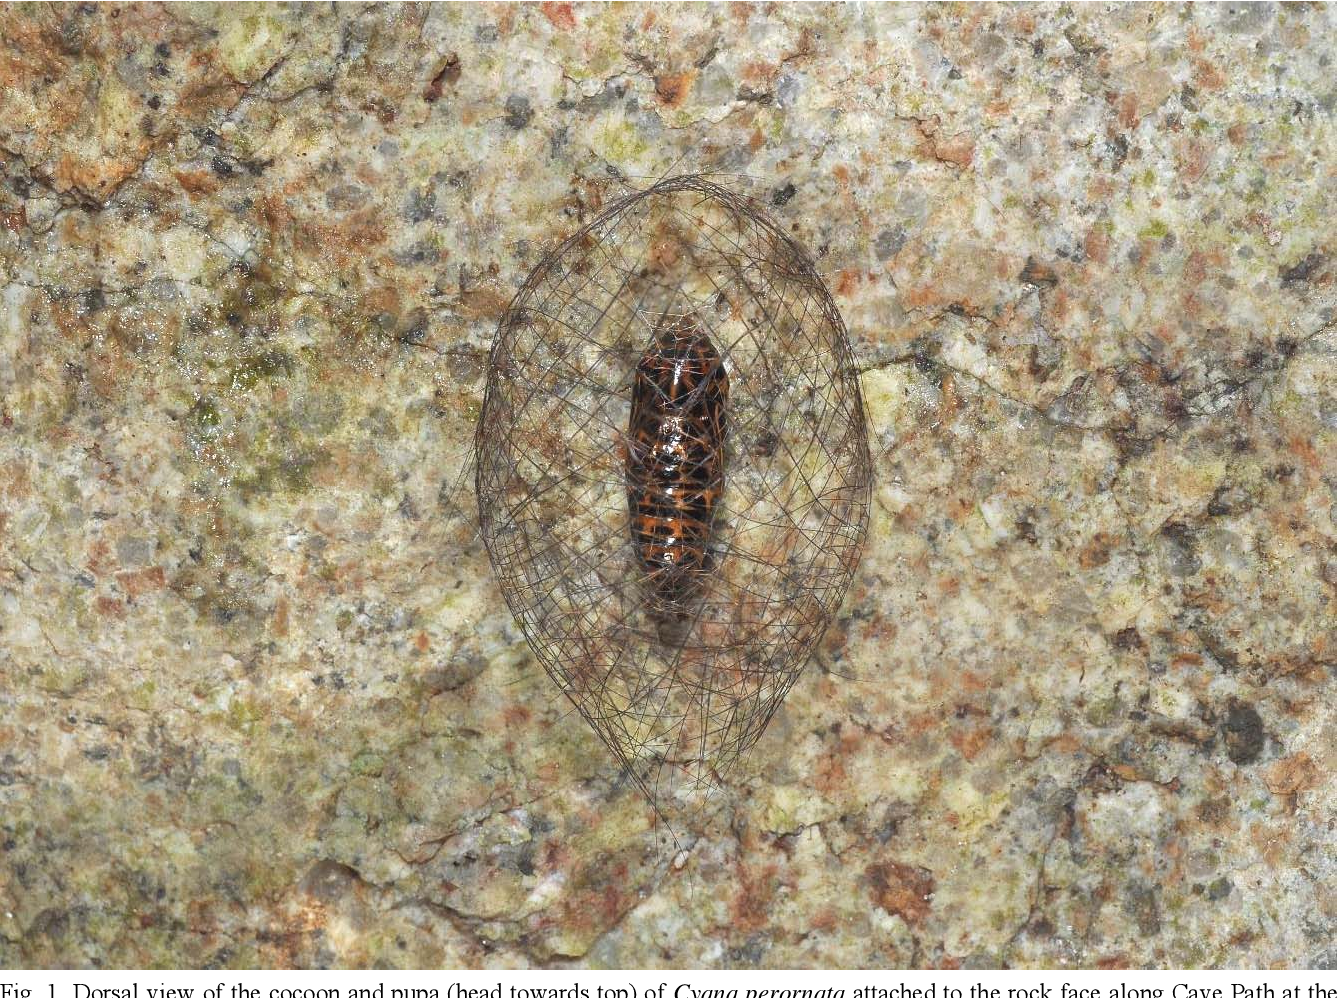 Fig. 1. Dorsal view of the cocoon and pupa (head towards top) of Cyana perornata attached to the rock face along Cave Path at the Bukit Timah Nature Reserve, encountered on the night of 9 Jul.2010 (ca. 2230 hours).